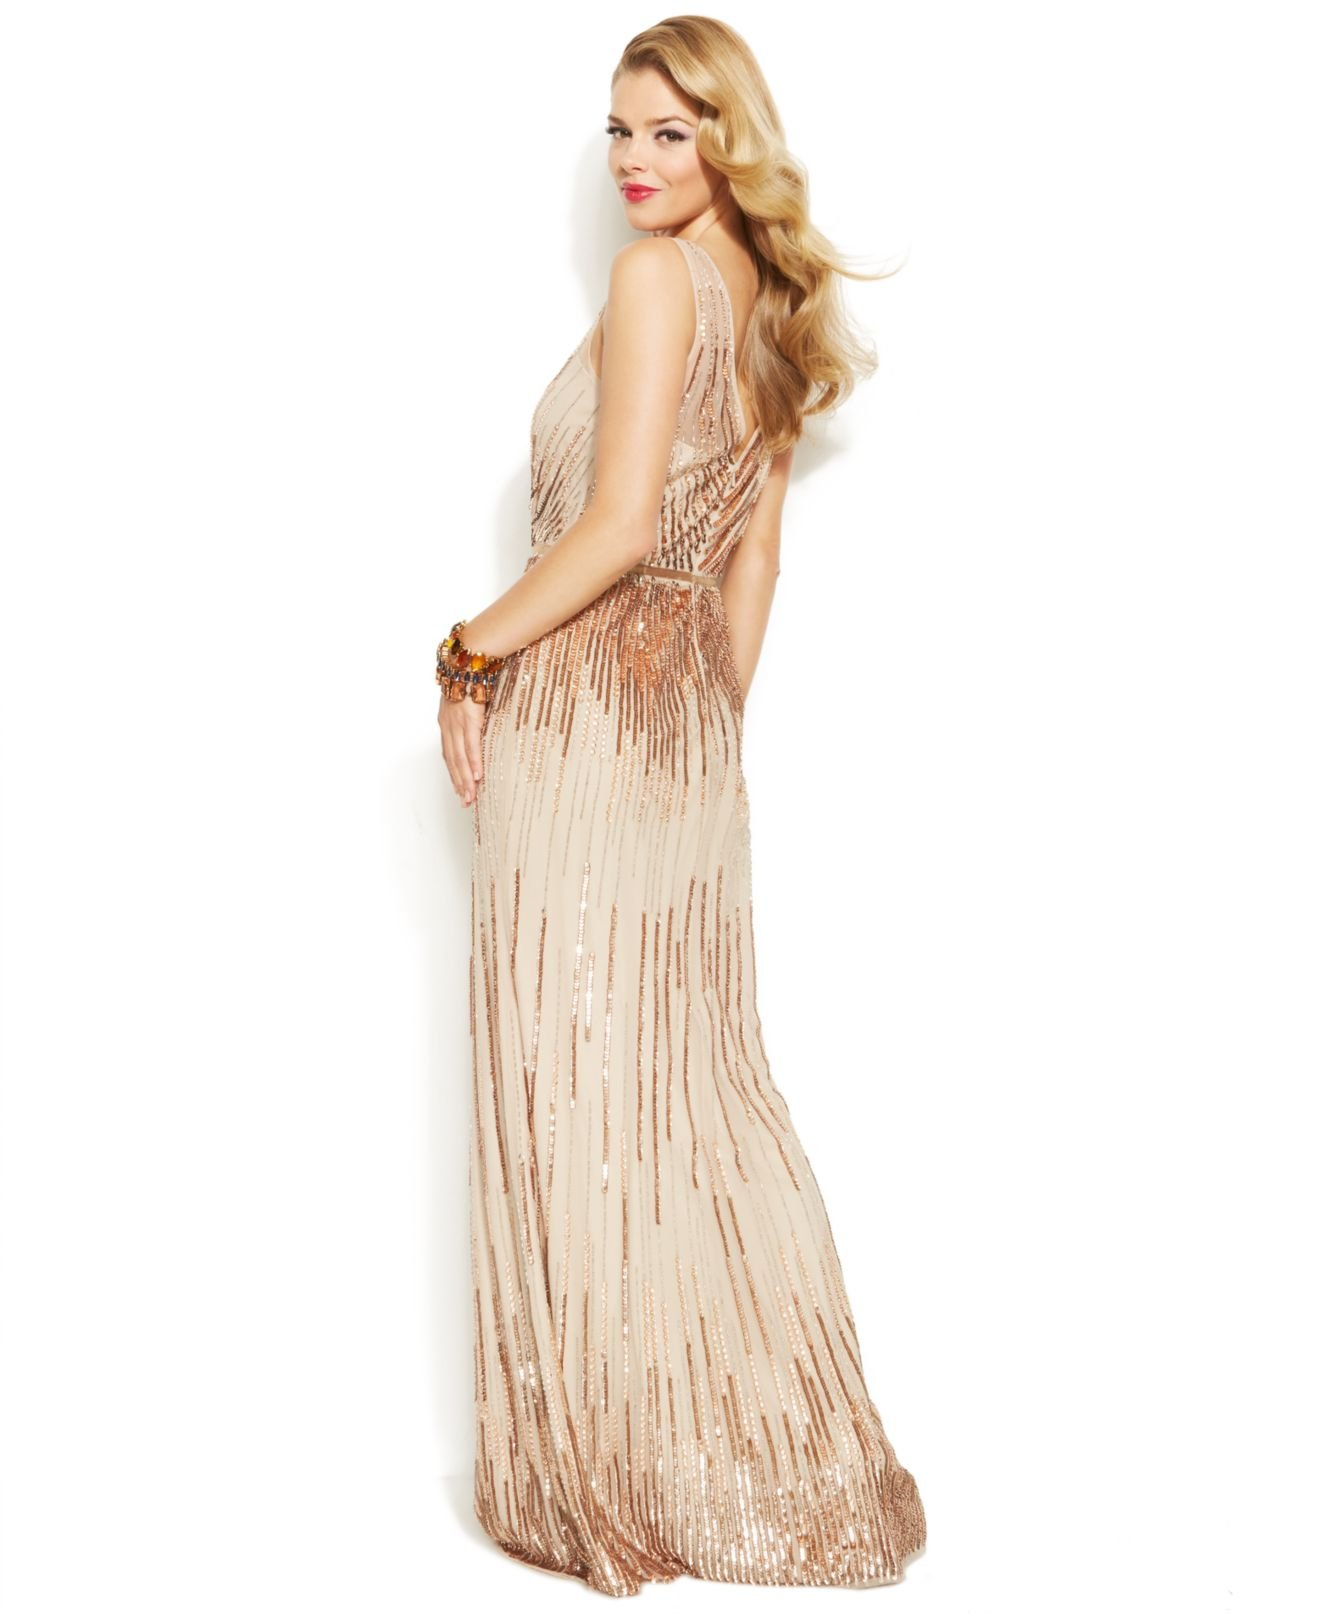 Papell cap sleeve beaded sequined gown dresses women macy s - Gallery Adrianna Papell Sleeveless Sequin Illusion Gown